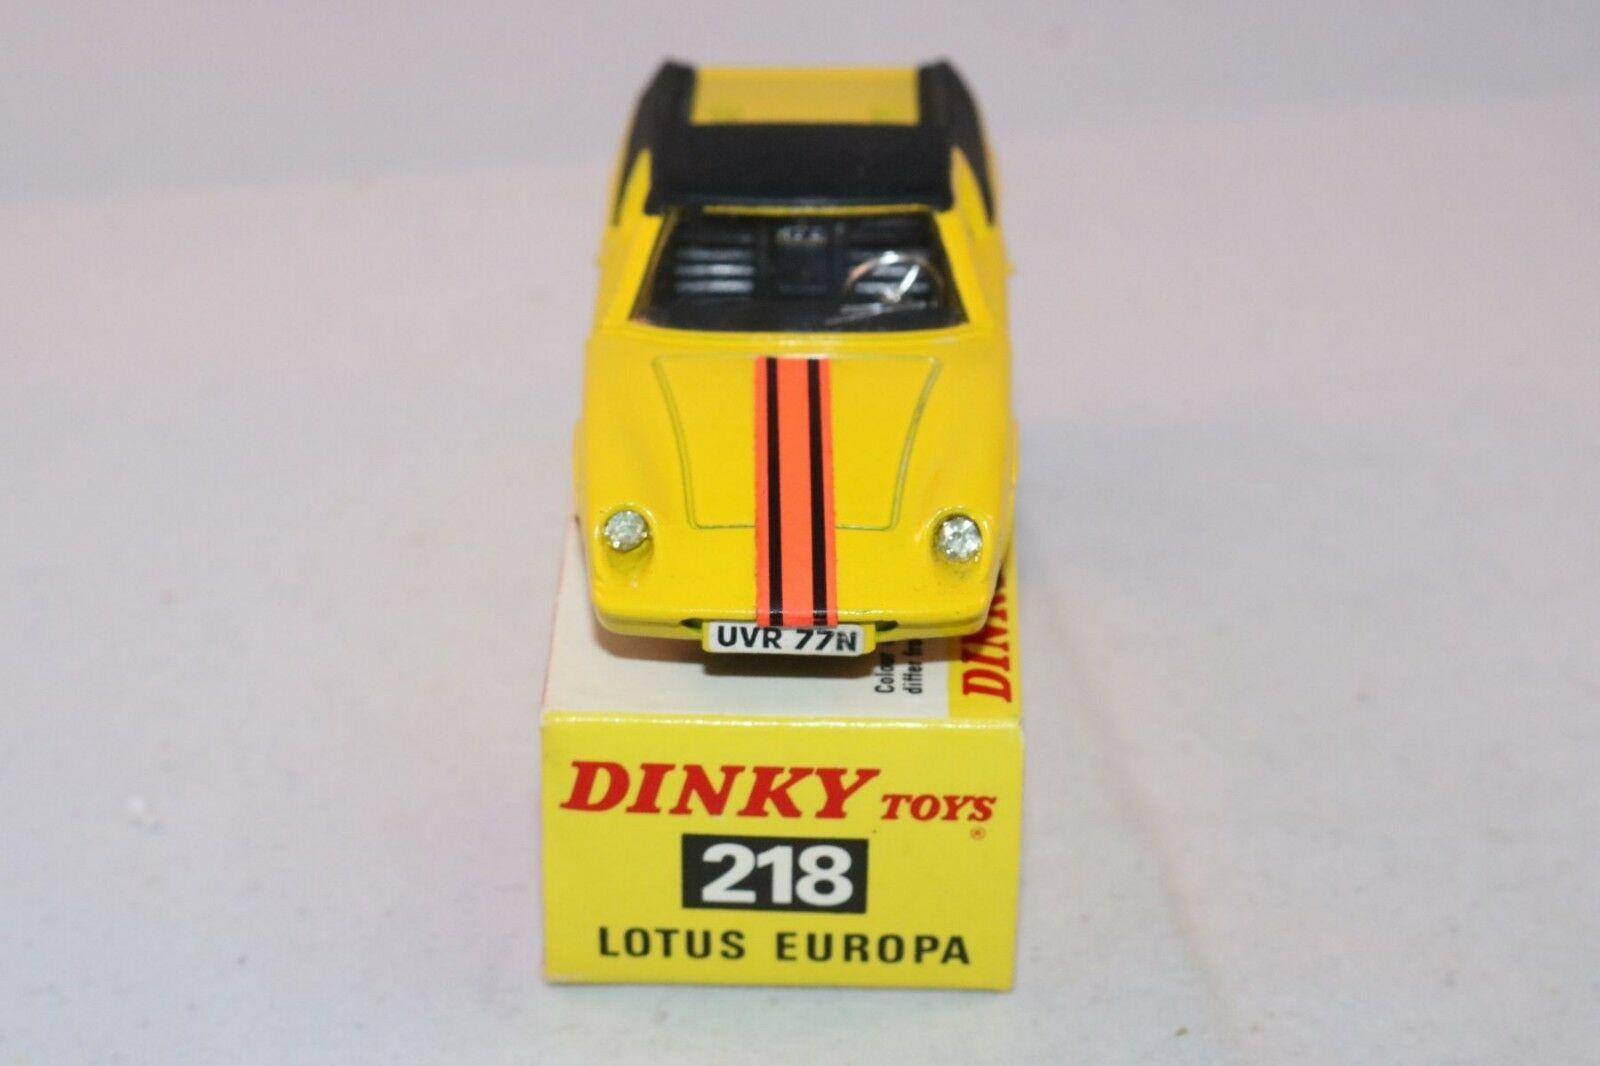 Dinky Toys 218 Lotus Europa perfect mint mint mint in a perfect box all original condition a8a915